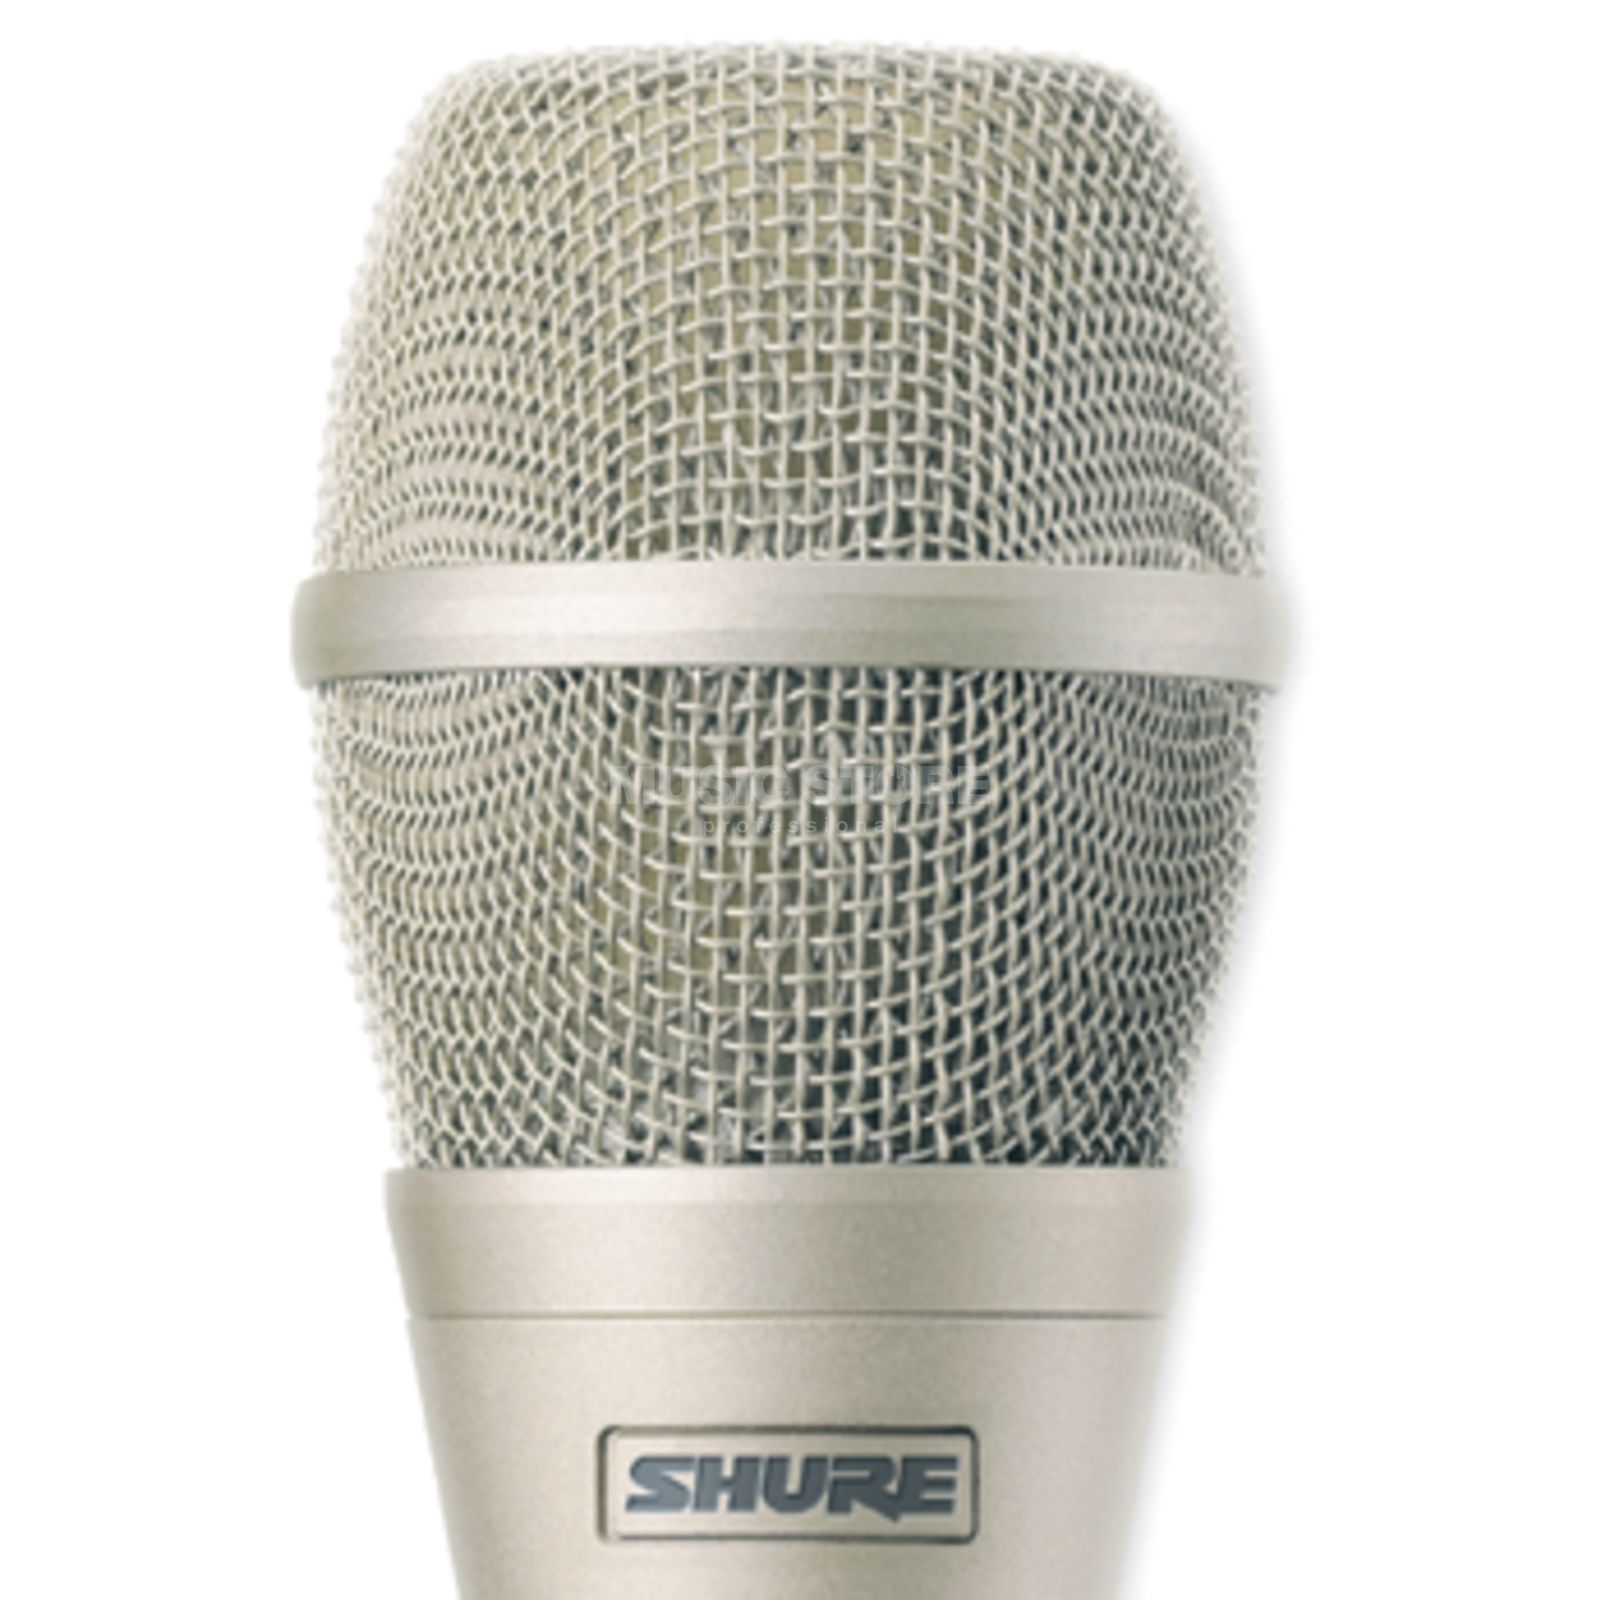 Shure RPW180 KSM 9 Capsule champagne Switchable Cardioid/Super Cardioid Produktbillede